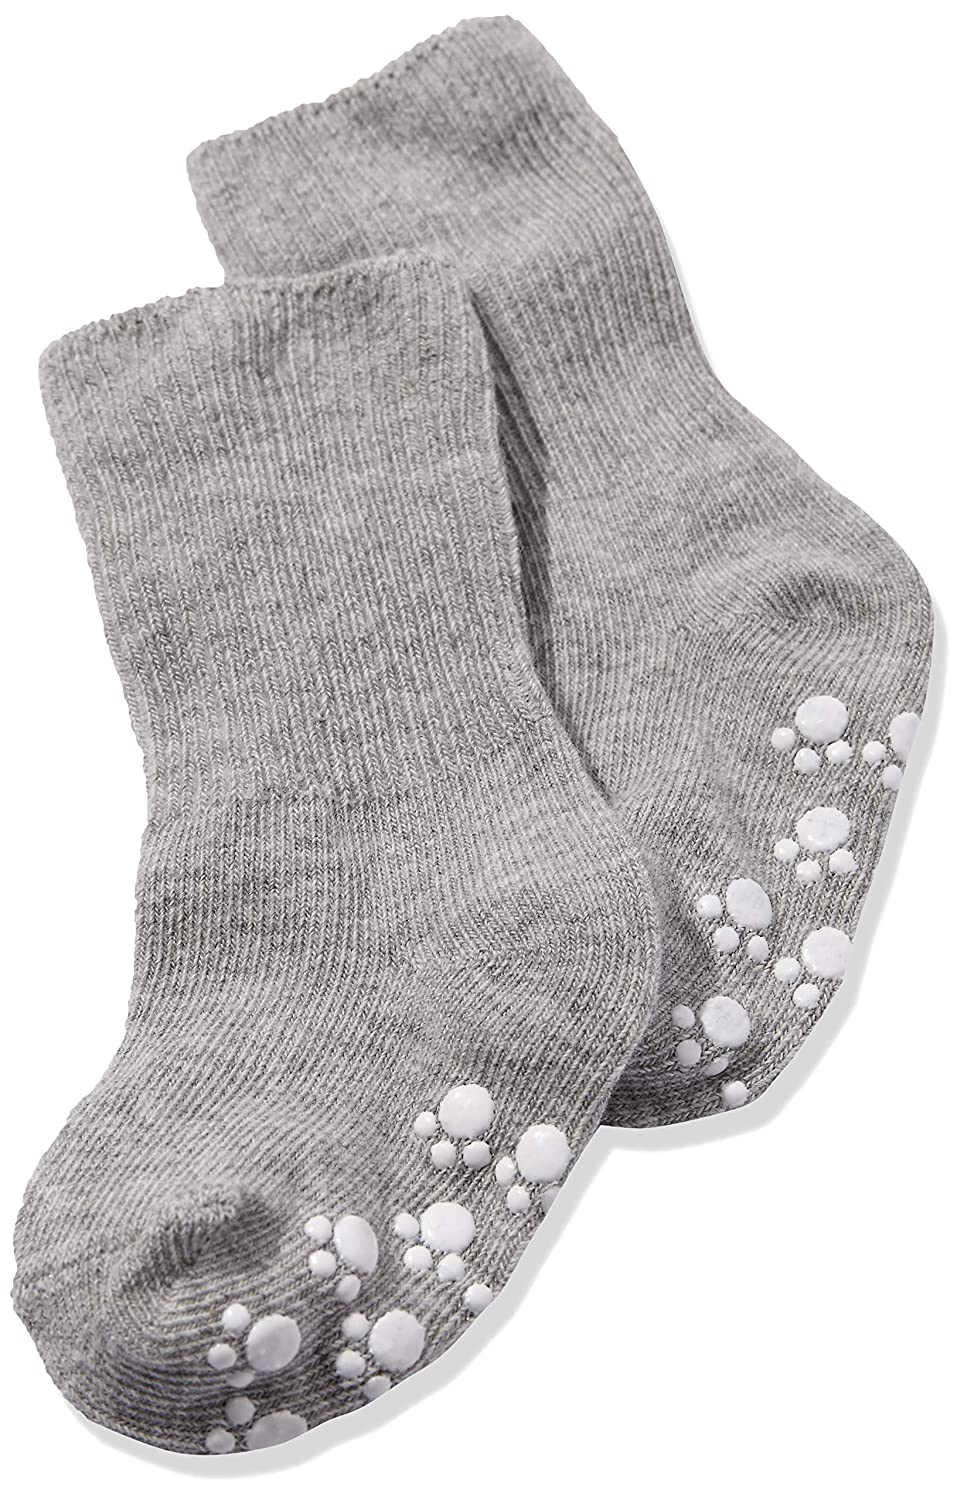 Living Life Baby Cotton Socks Non Slip Soles with Grip Pack of Six Pairs for Infants Boys Girls